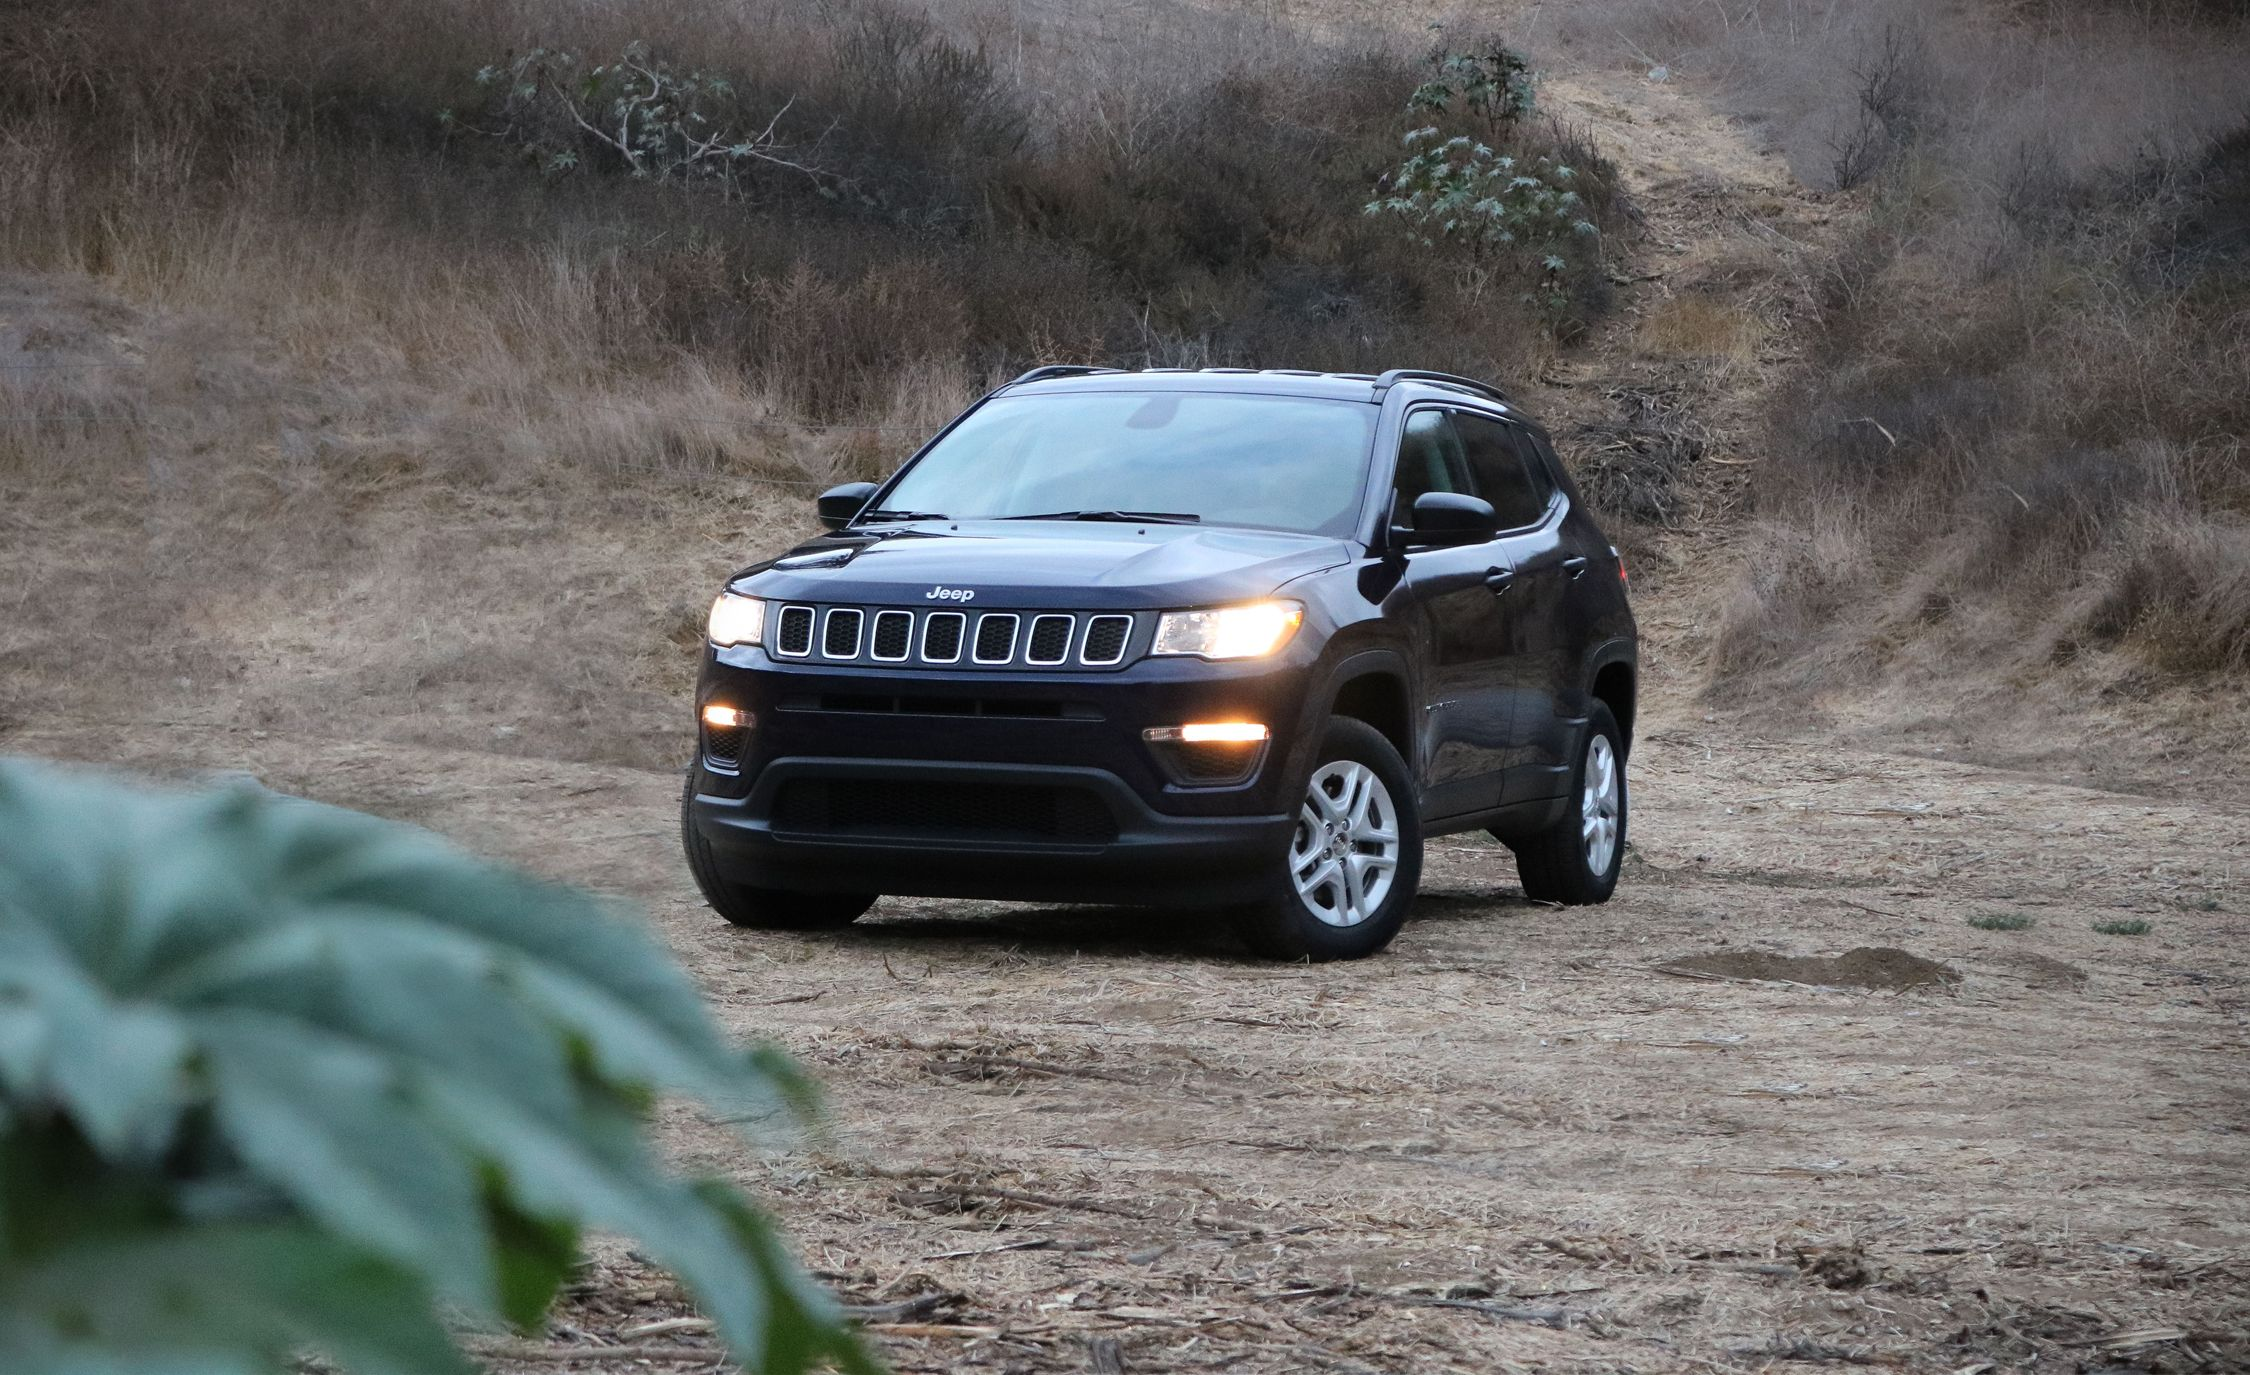 2017 Jeep Compass 4x4 Manual Test | Review | Car and Driver